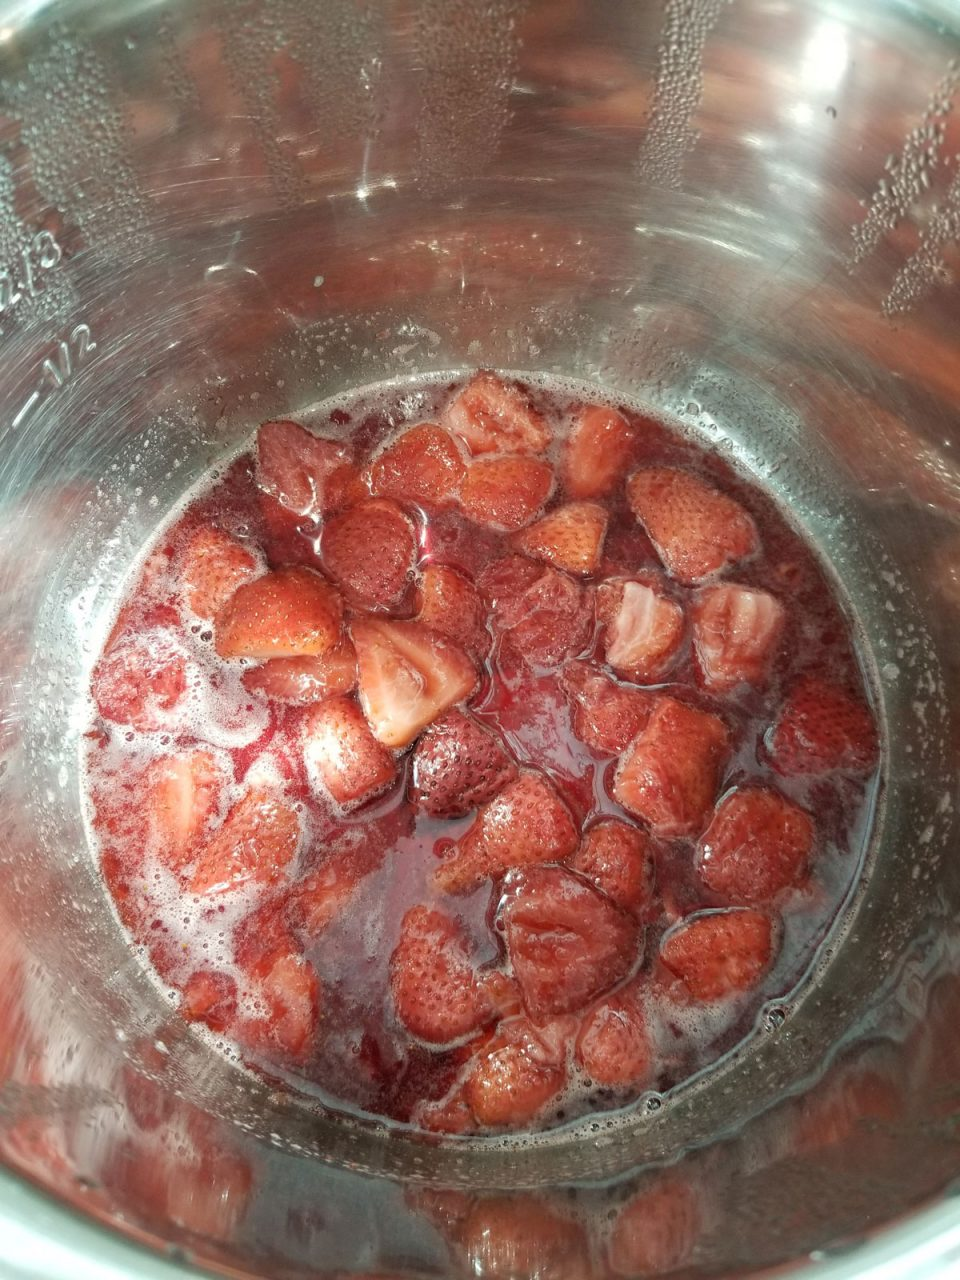 cooked strawberries